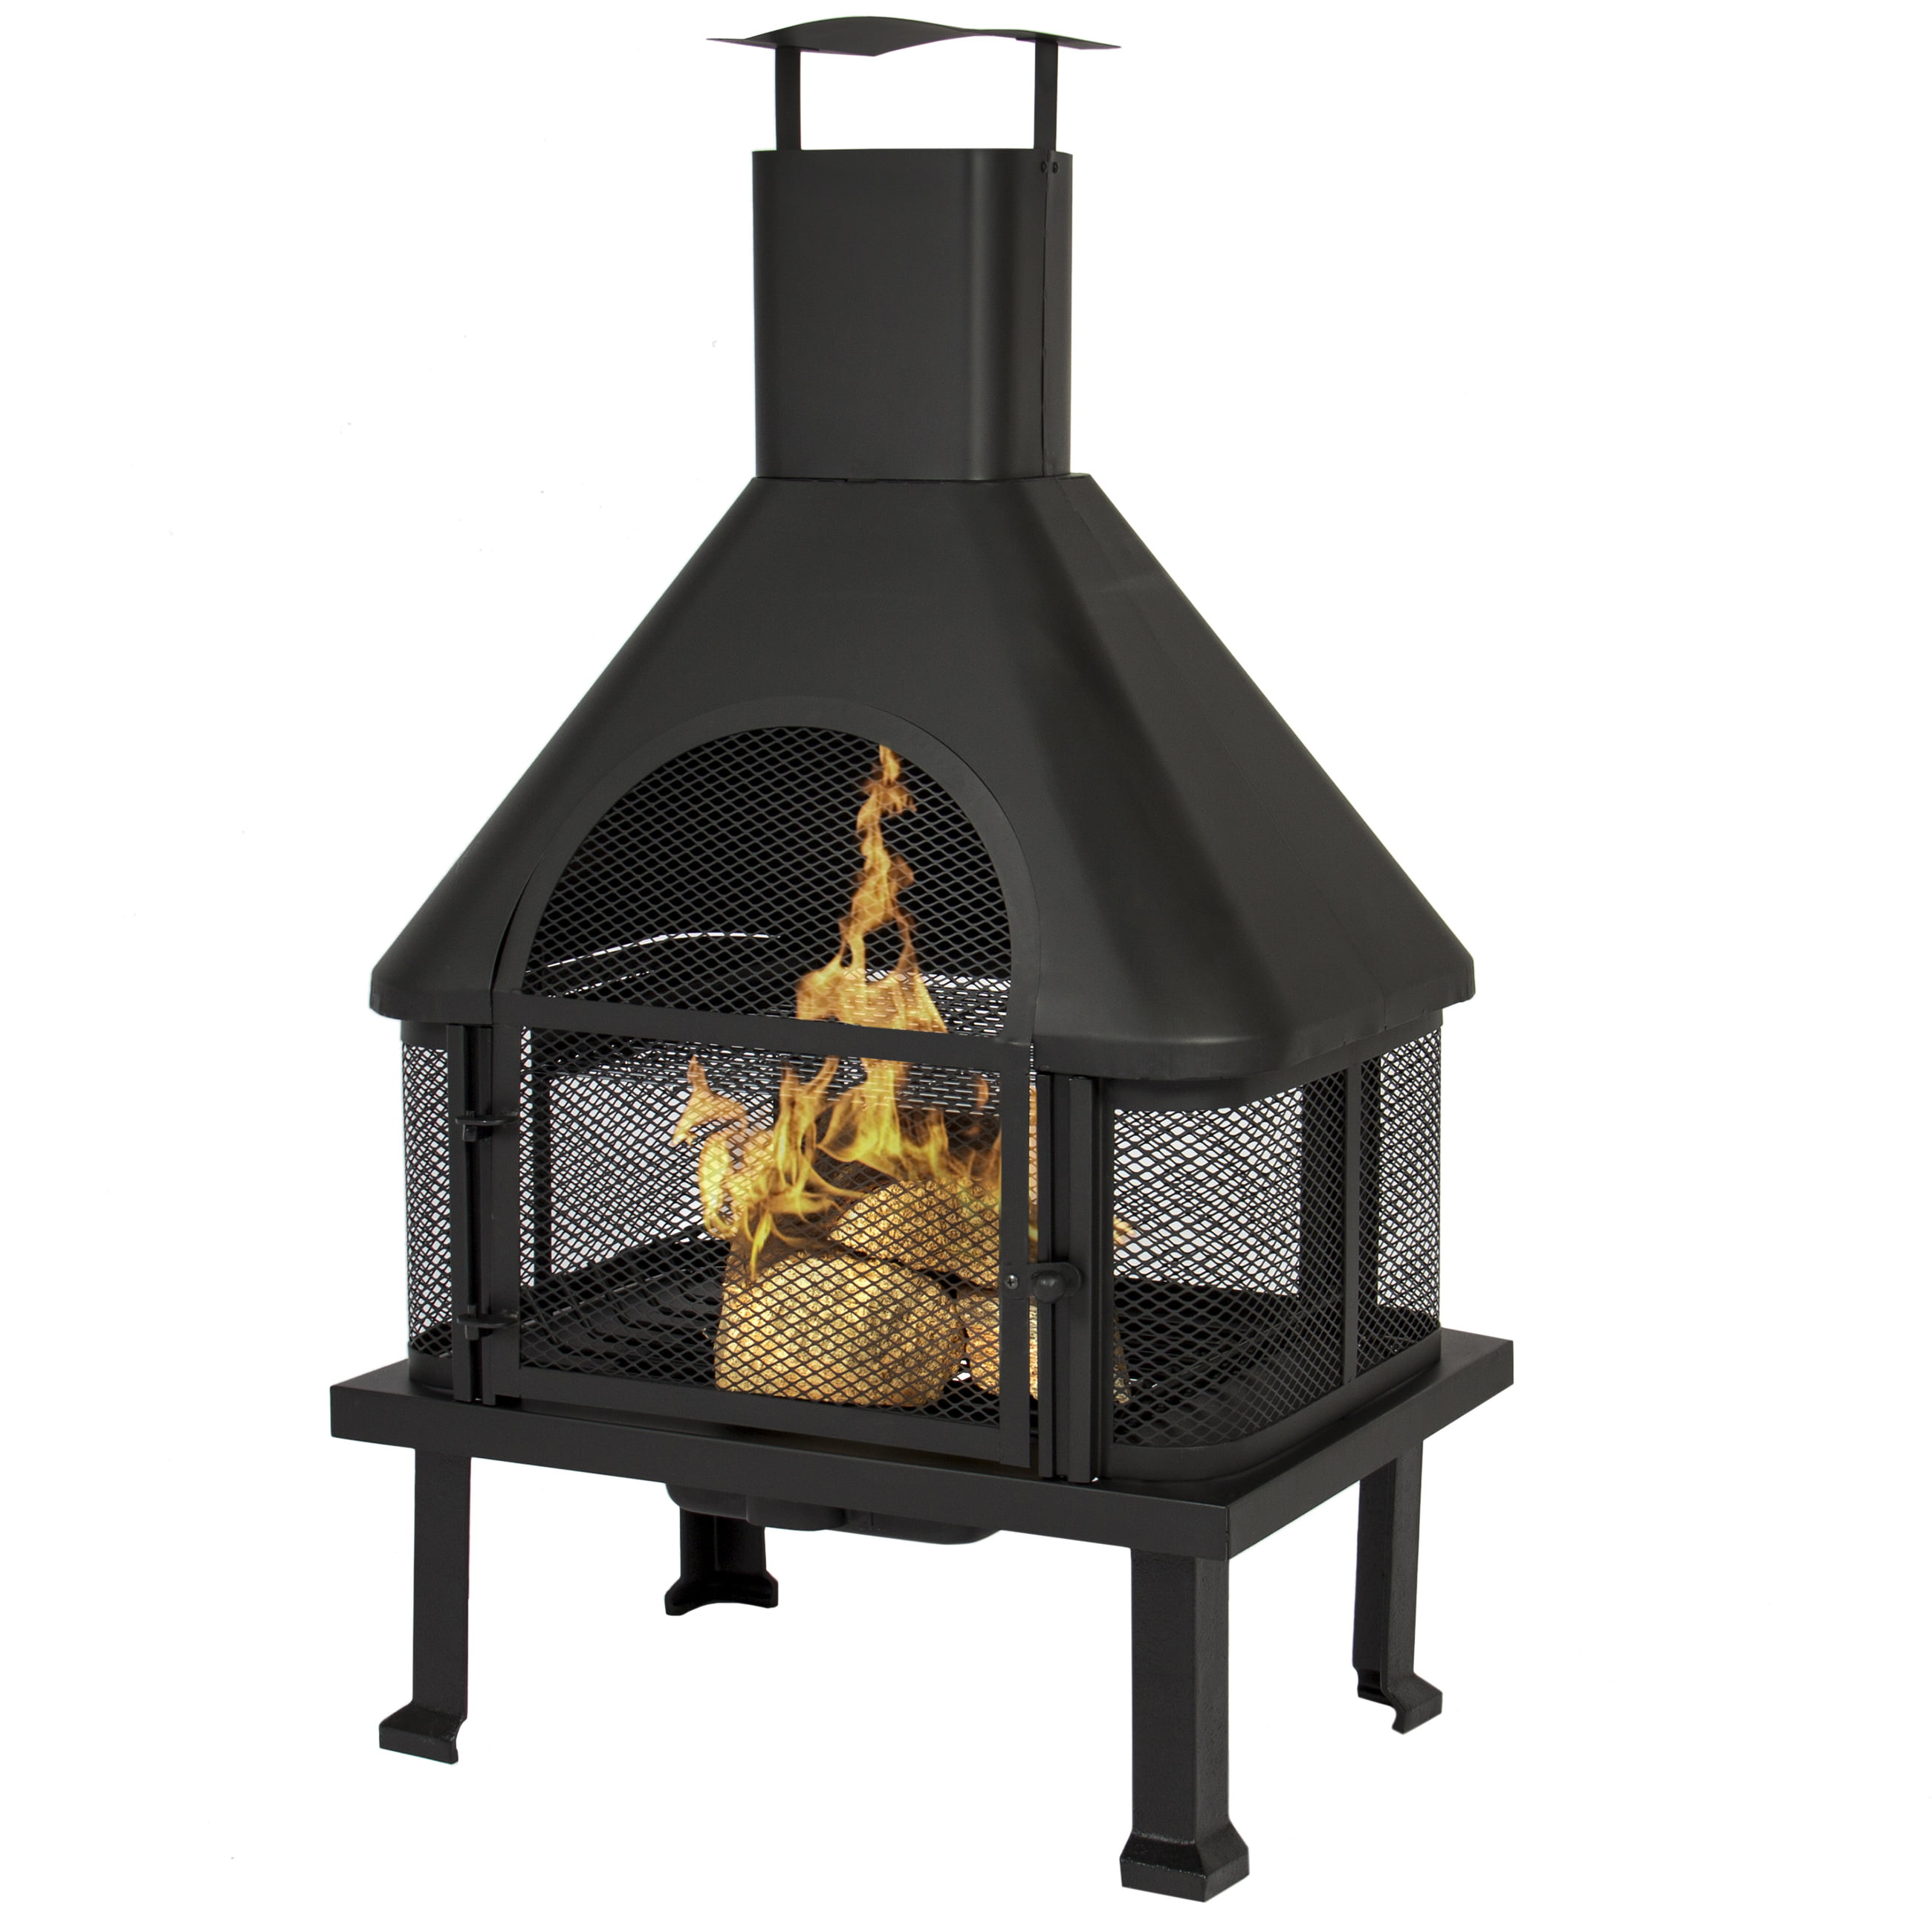 BCP Firehouse Firepit With Chimney Outdoor Backyard Deck Fireplace by